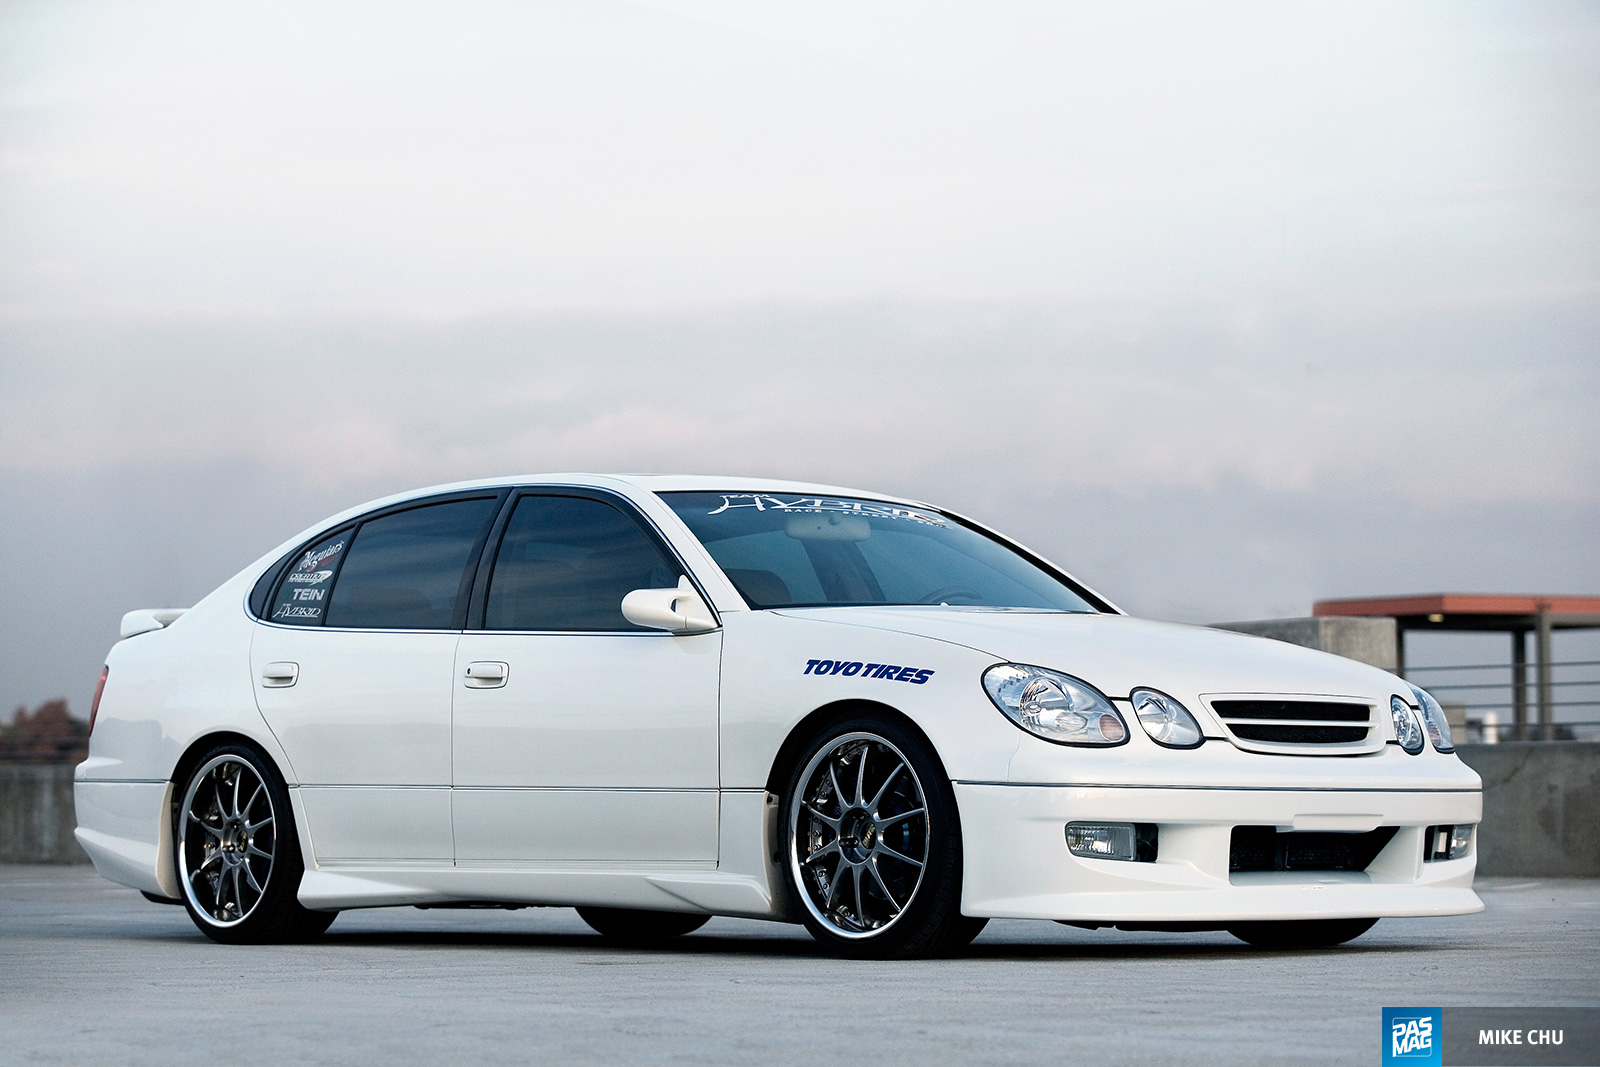 15 Kirby Wang 1998 Lexus GS300 Team Hybrid pasmag